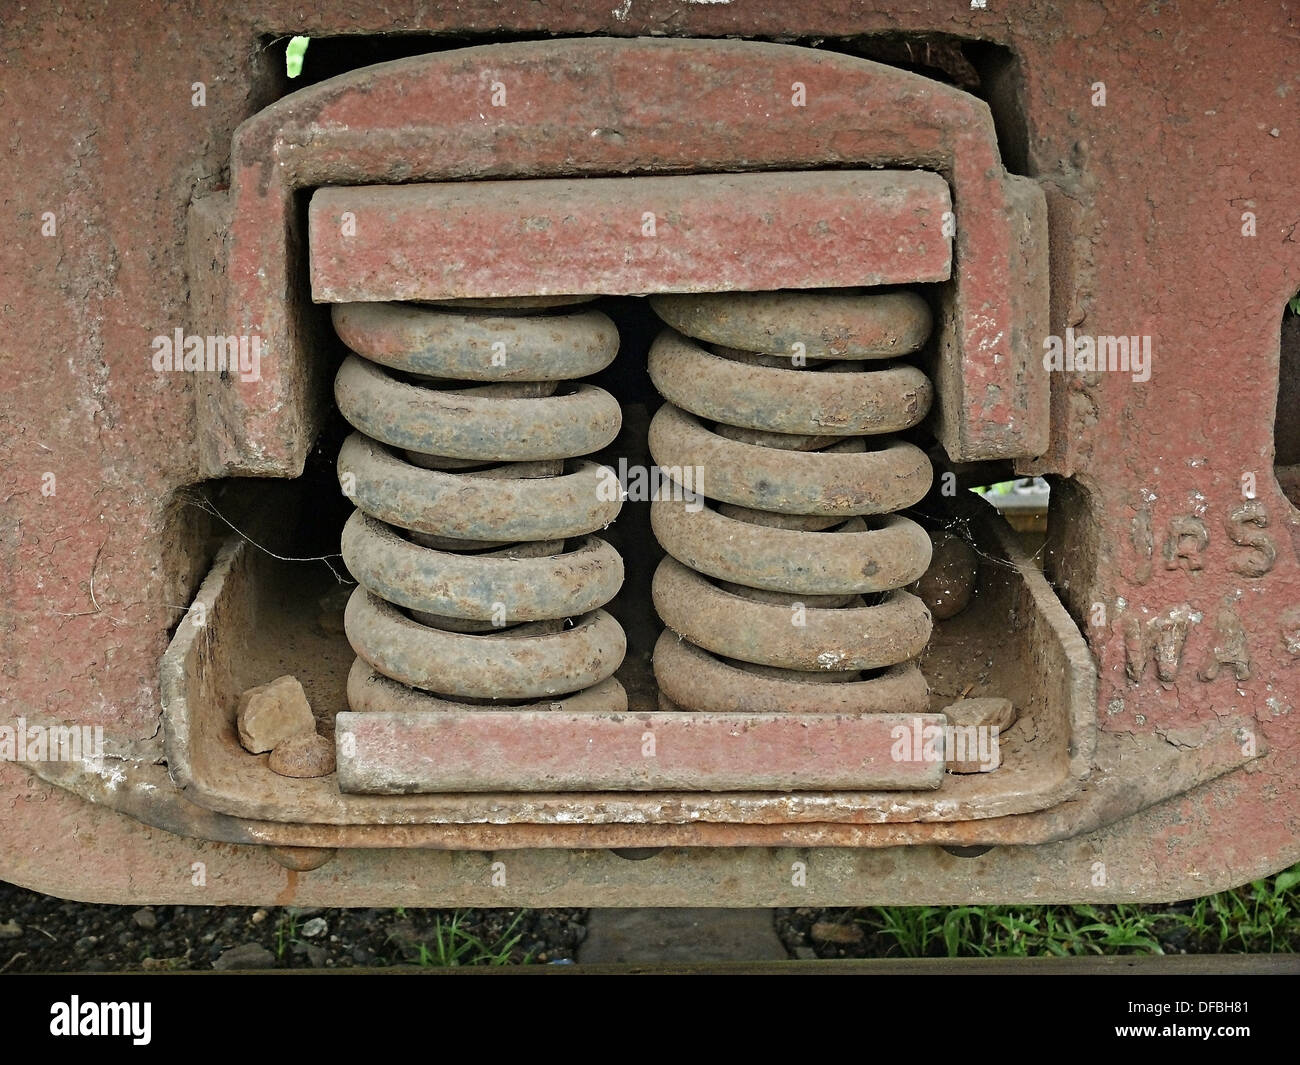 Railway Shock absorbers - Stock Image